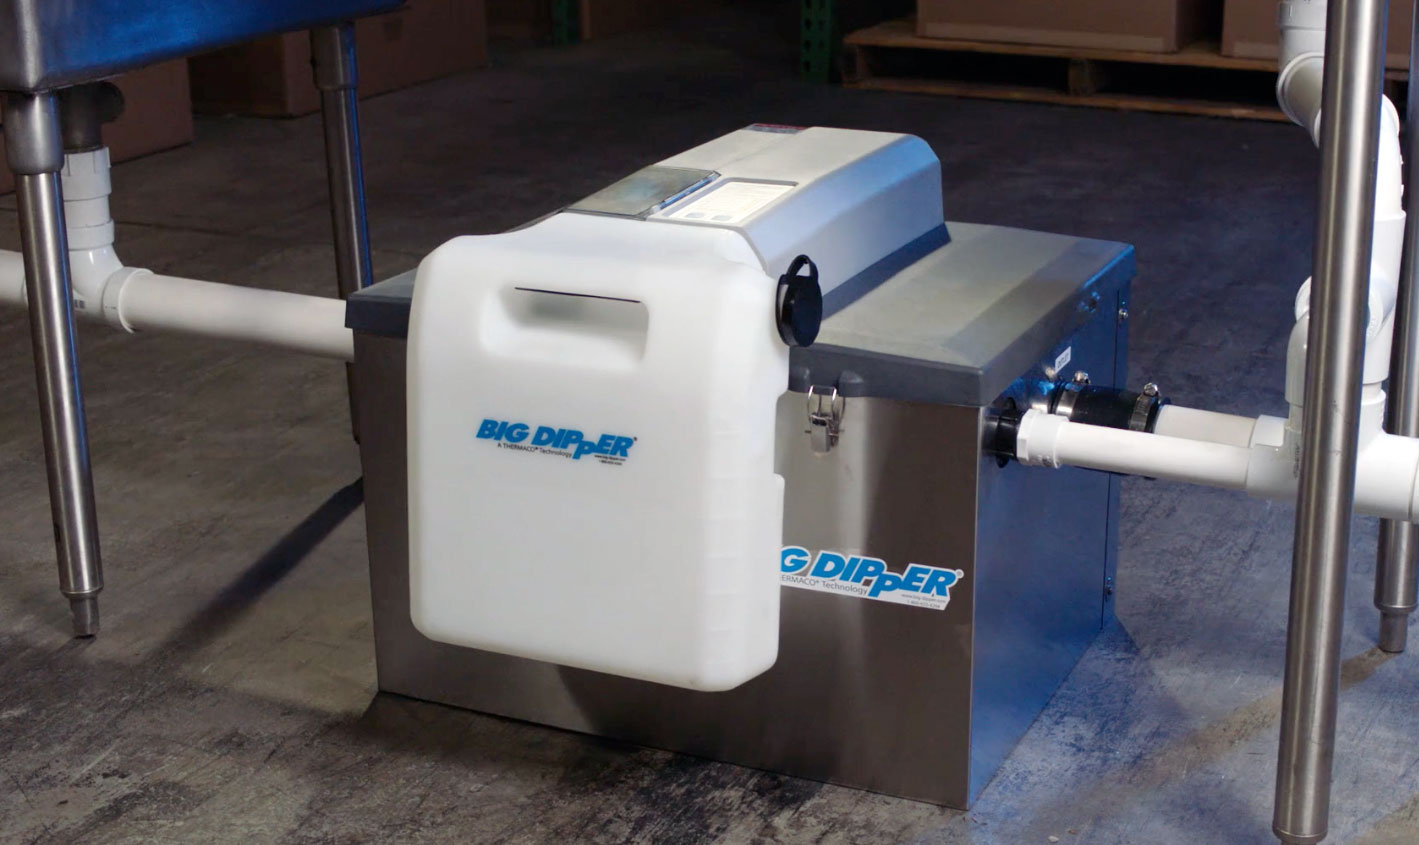 Big Dipper Automatics and Passive interceptors are designed to sit conveniently next to the sink or in a basement.